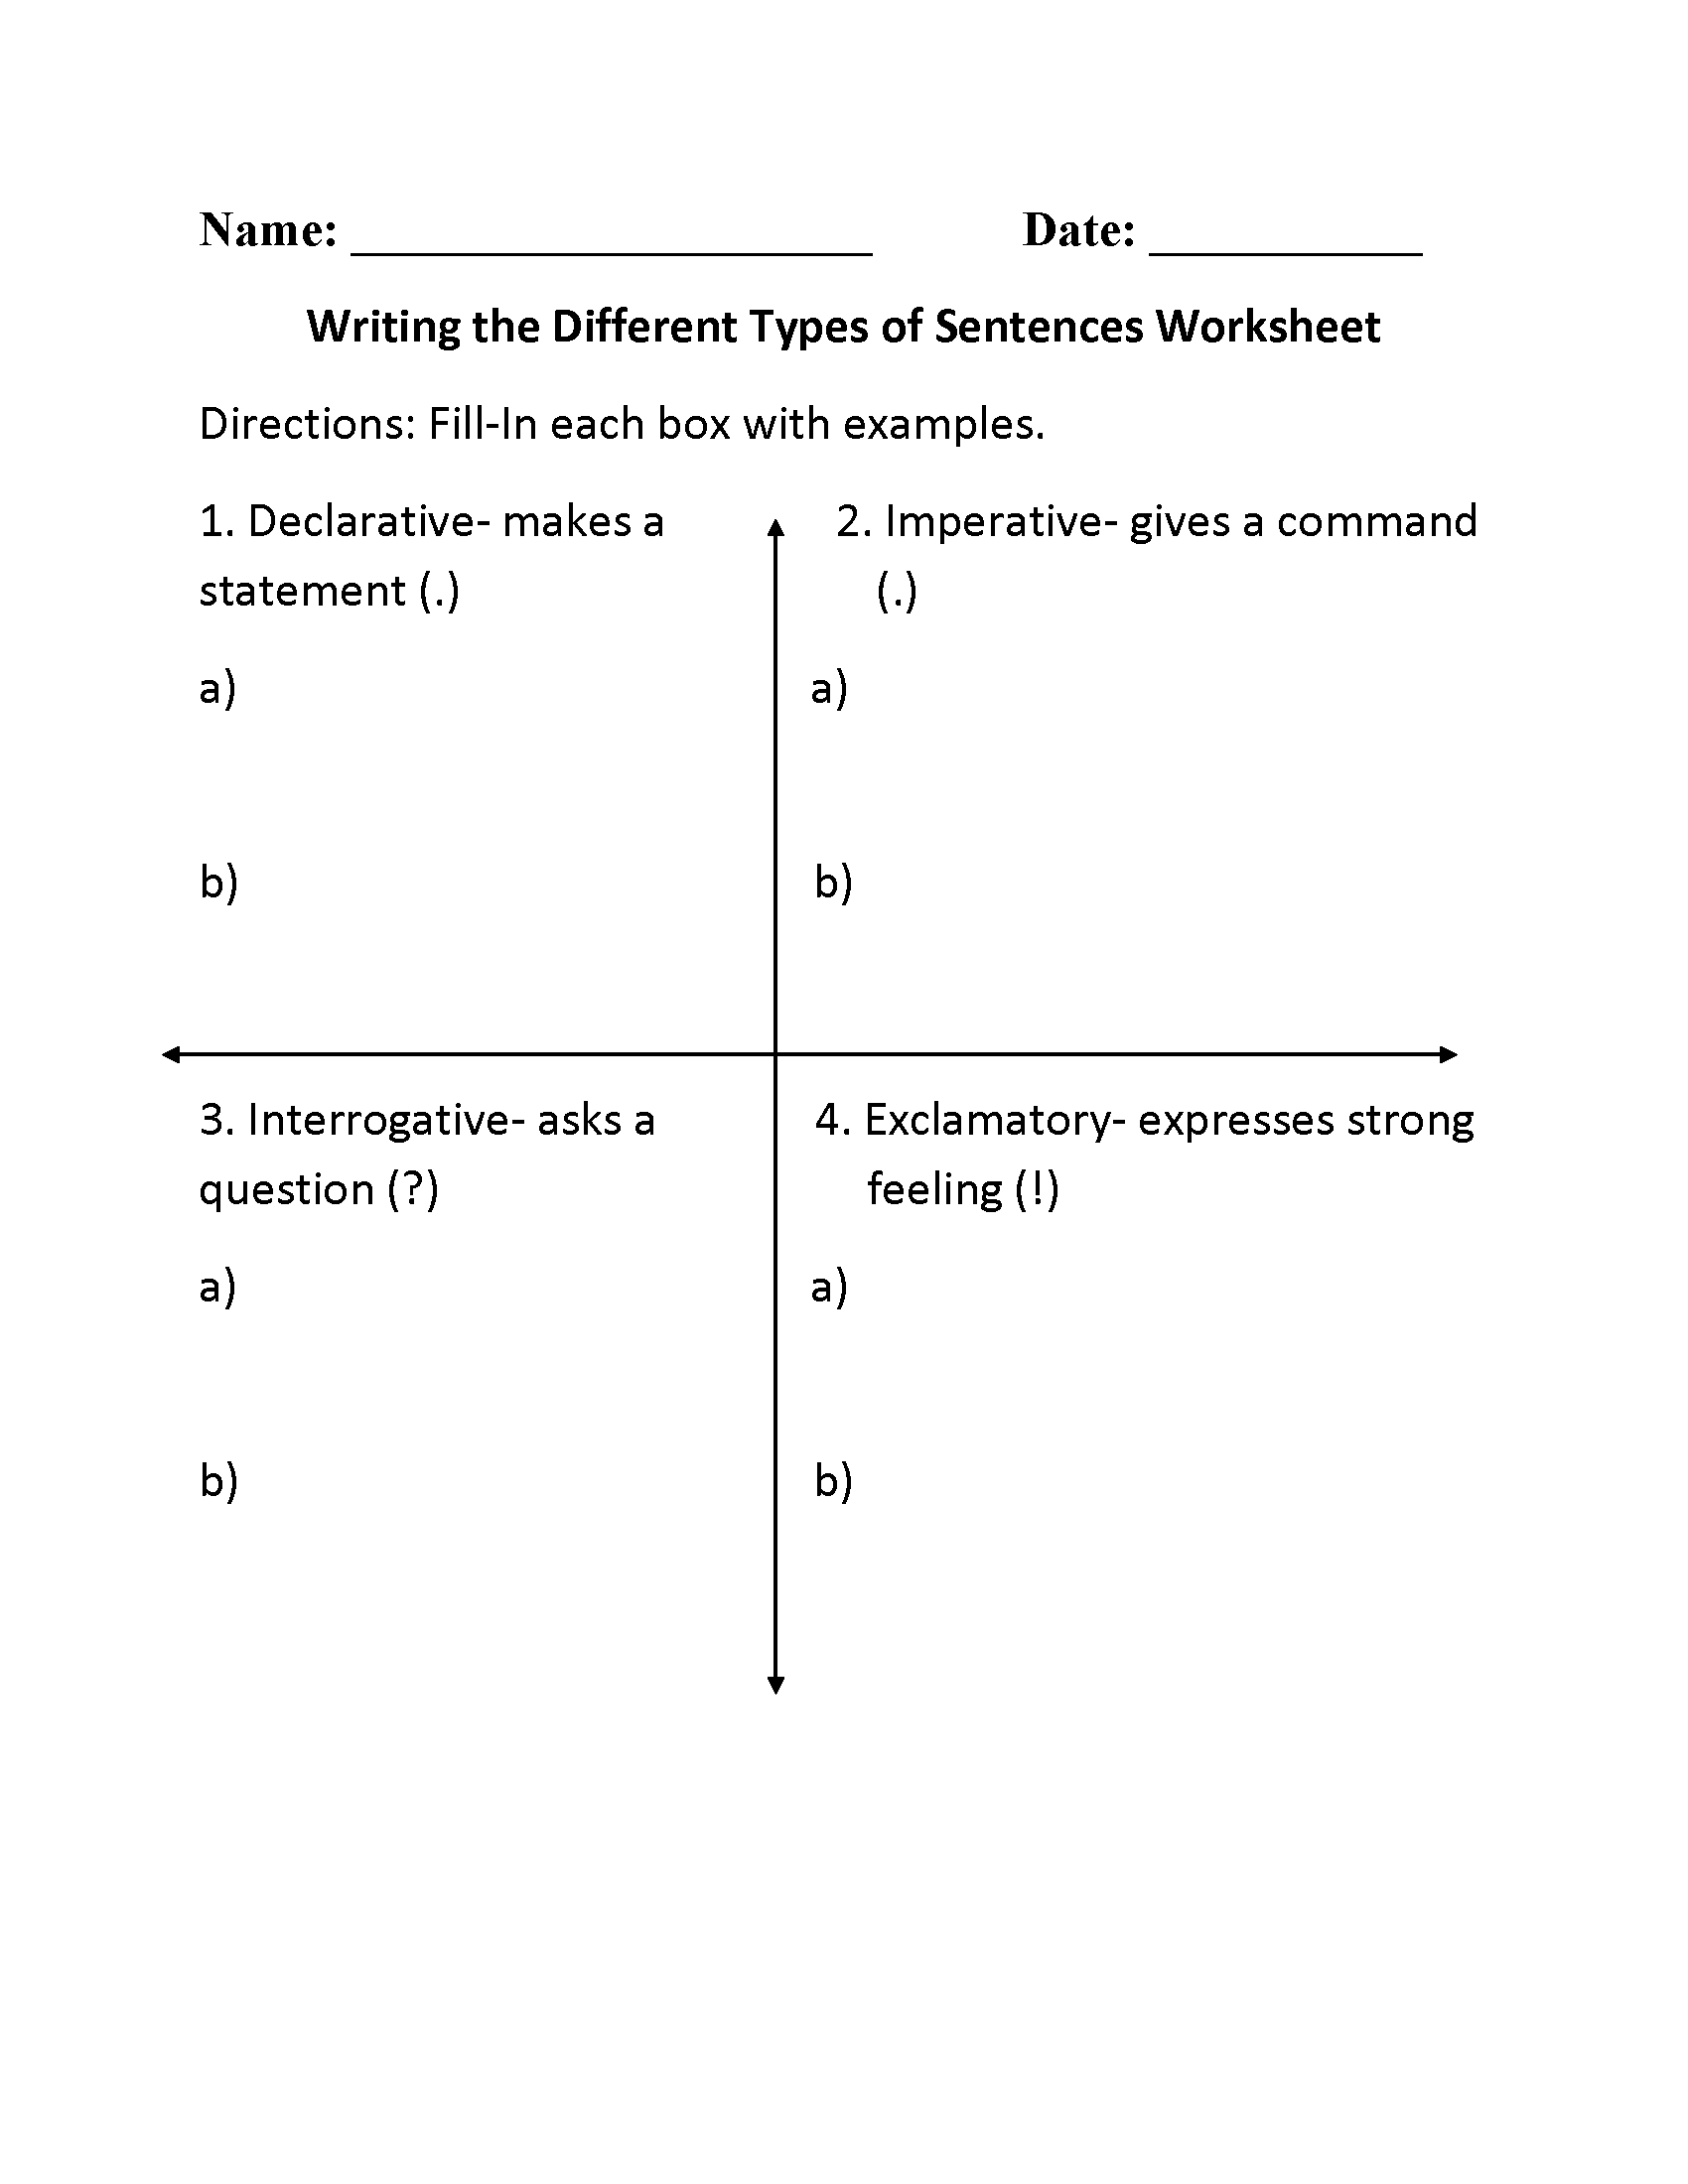 Worksheets Imperative And Exclamatory Sentences Worksheet sentences worksheets types of worksheet